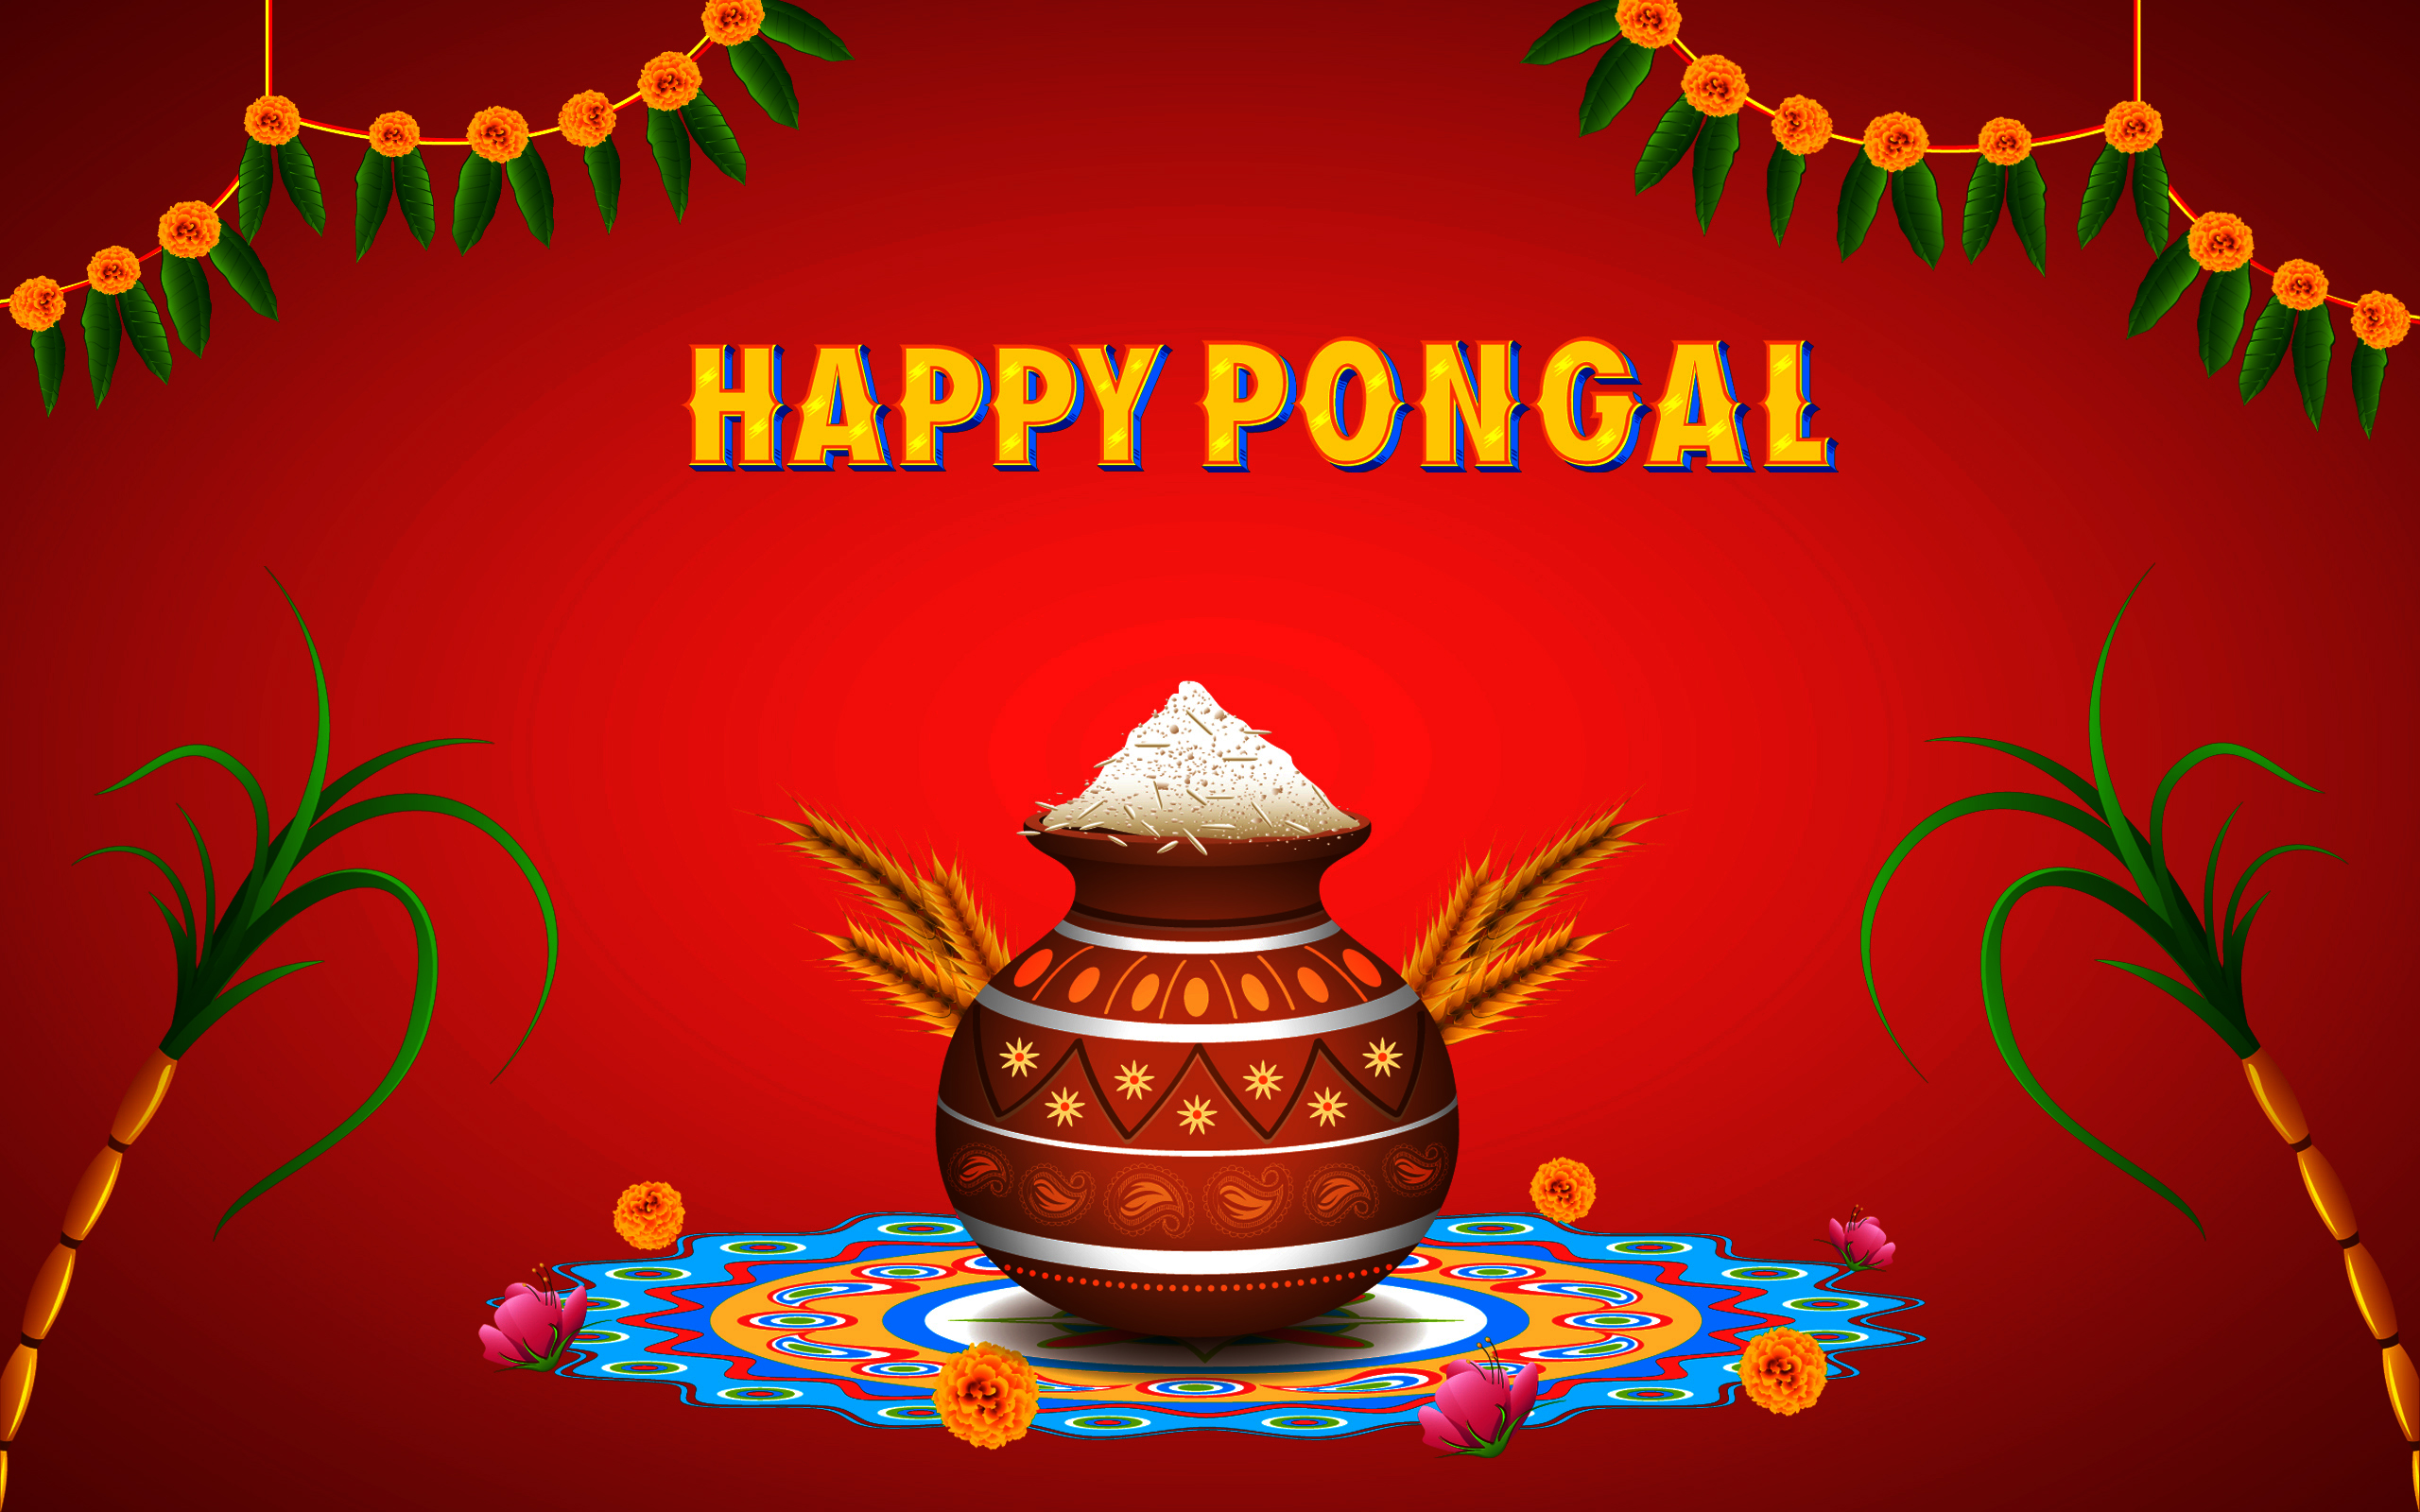 Pongal wallpapers download pongal wallpaper hd for mobile desktop - Hd images download ...